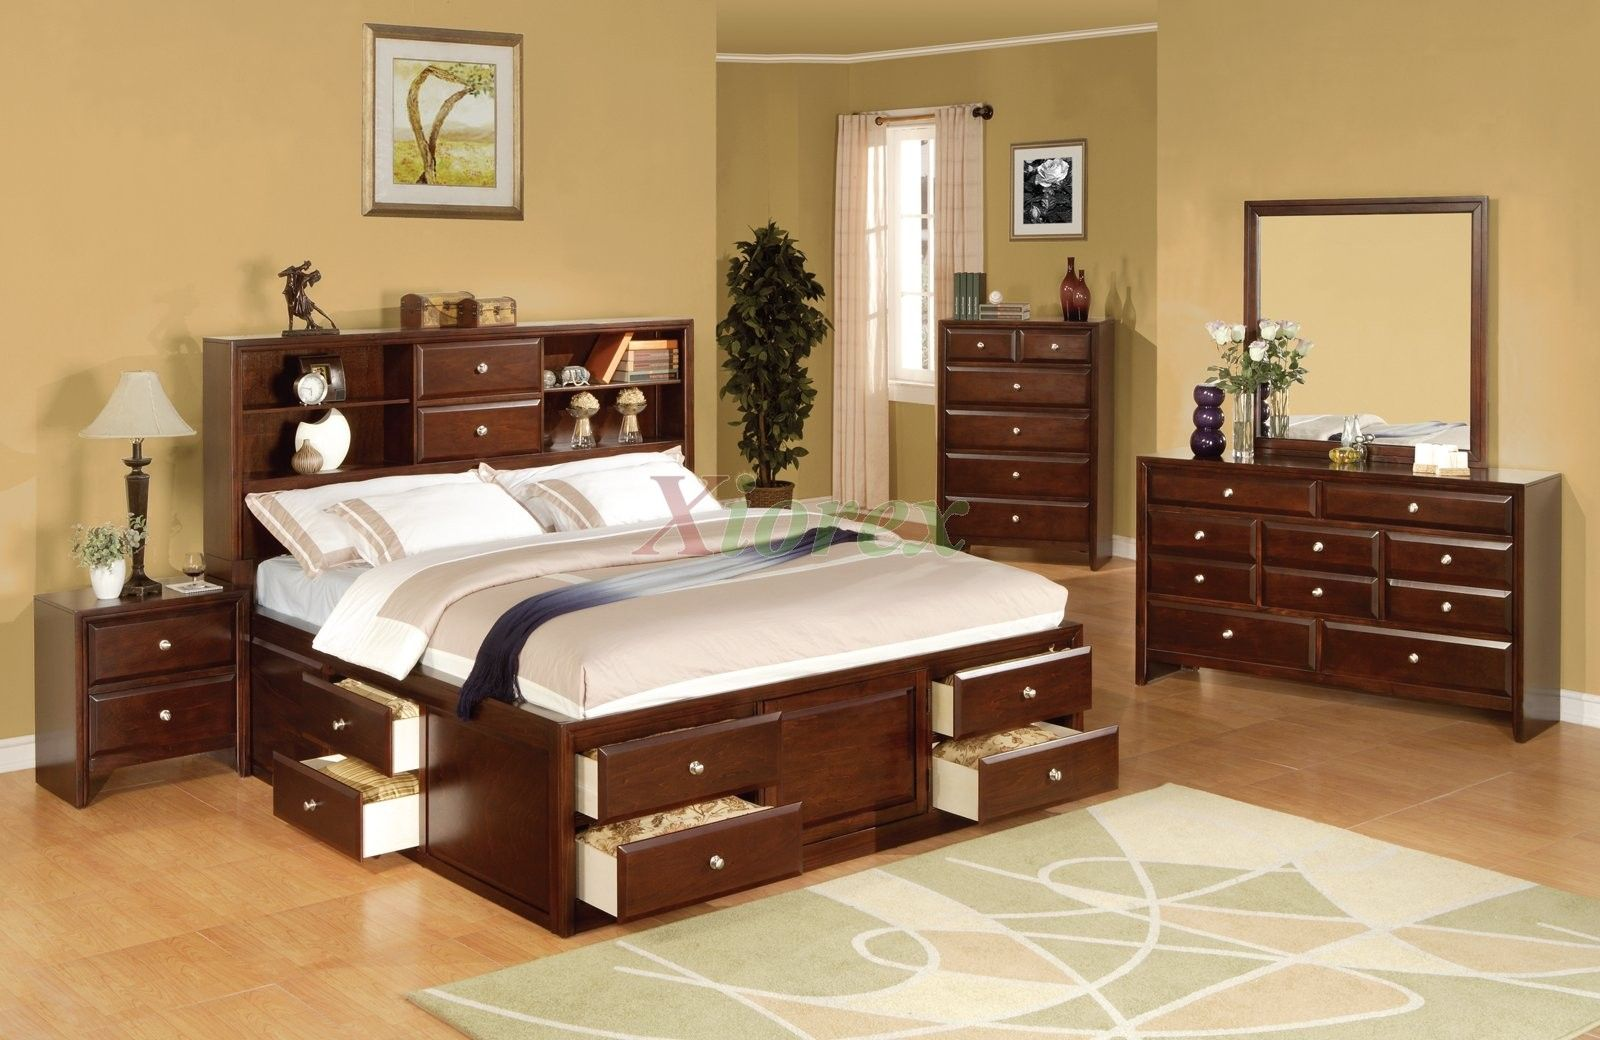 Furniture ideas bedroom furniture sets with storage